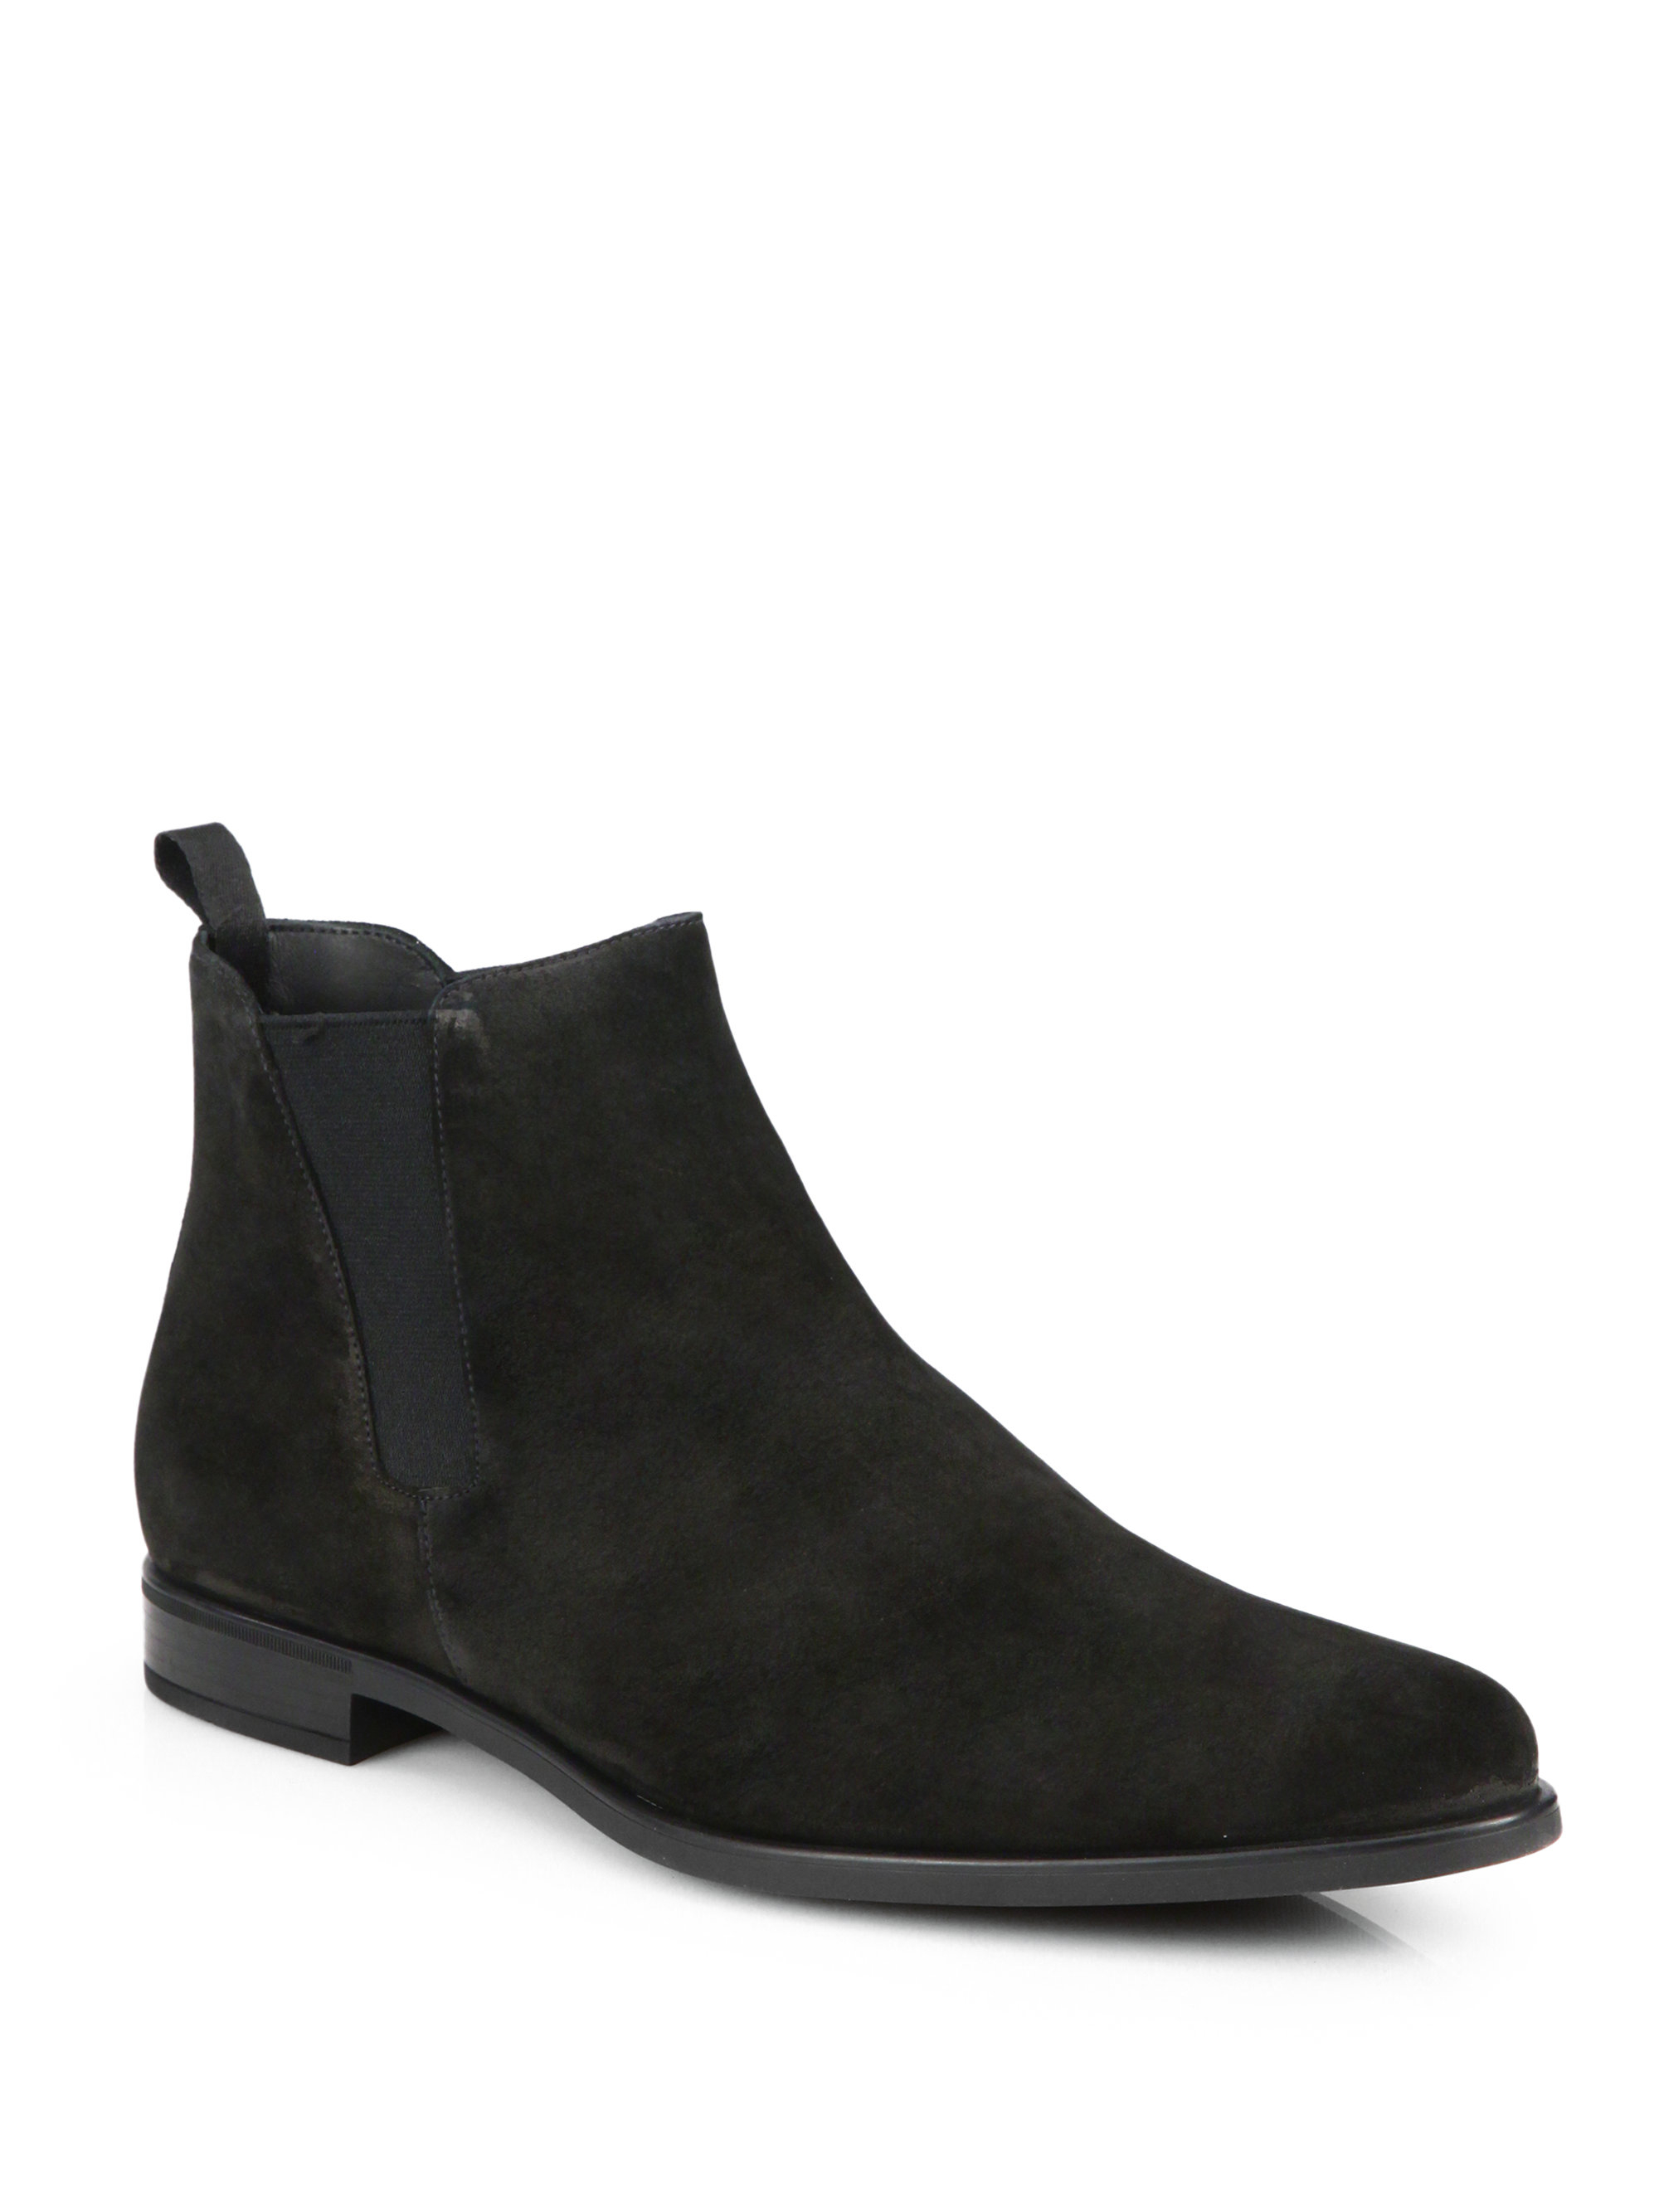 prada suede chelsea boots in black for men lyst. Black Bedroom Furniture Sets. Home Design Ideas